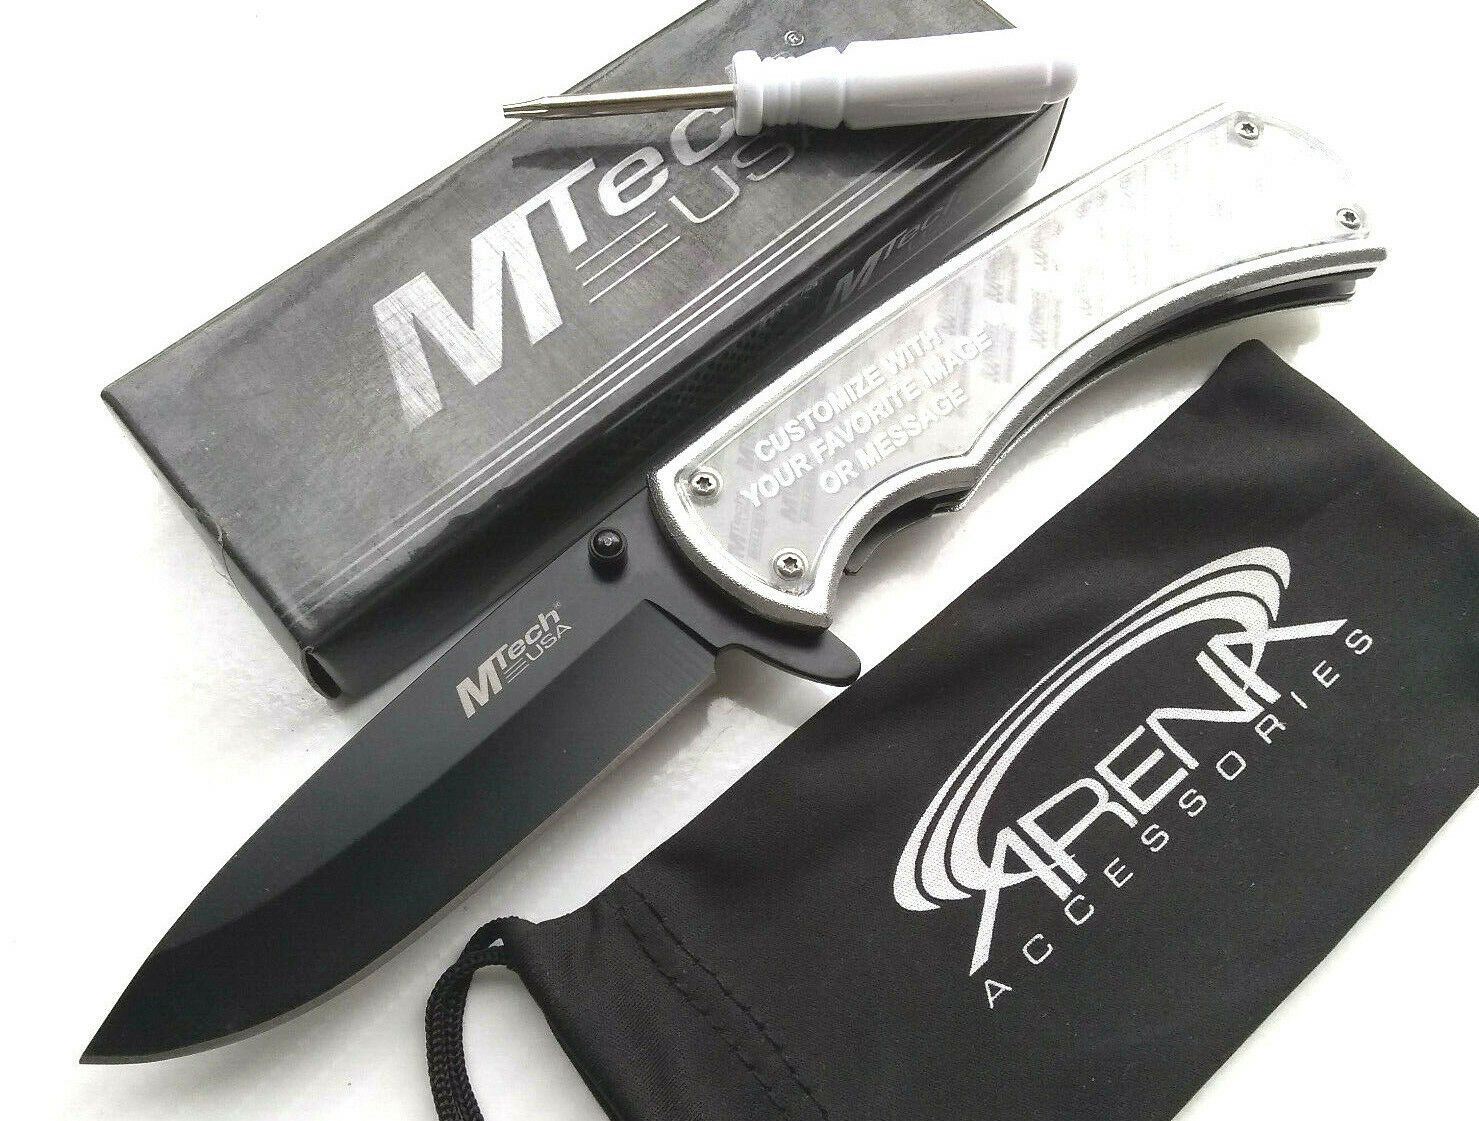 MTech Silver Self Customizable Photo Logo Memo Pocket Knife Spring Assisted EDC Promo Great Gift Idea